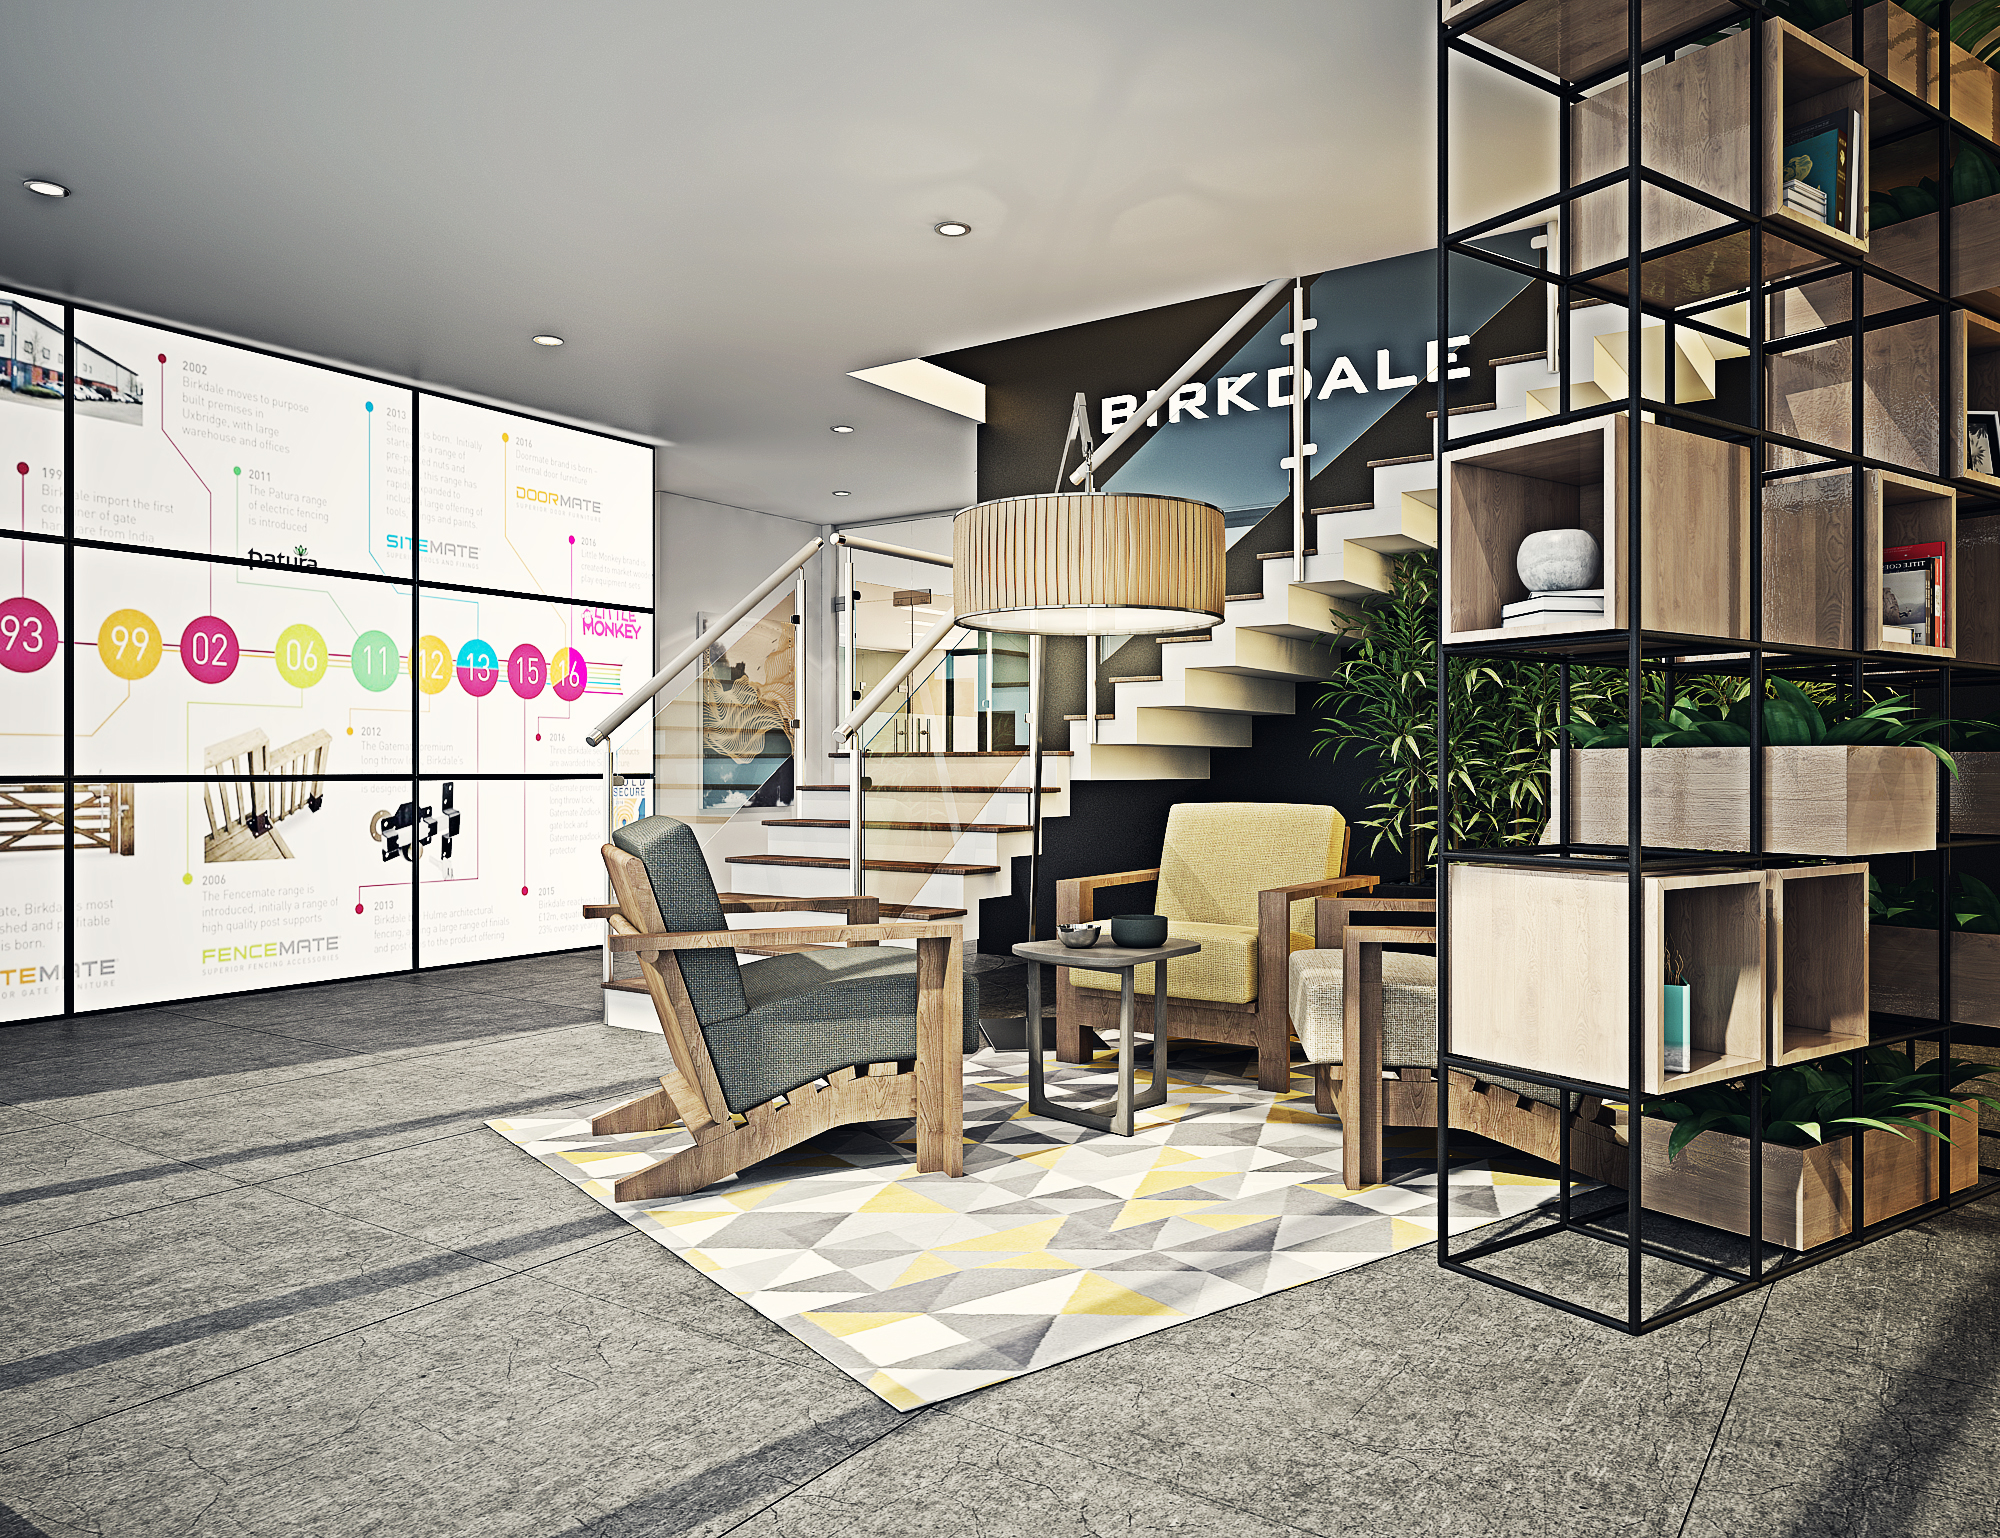 507-Birkdale Offices v1